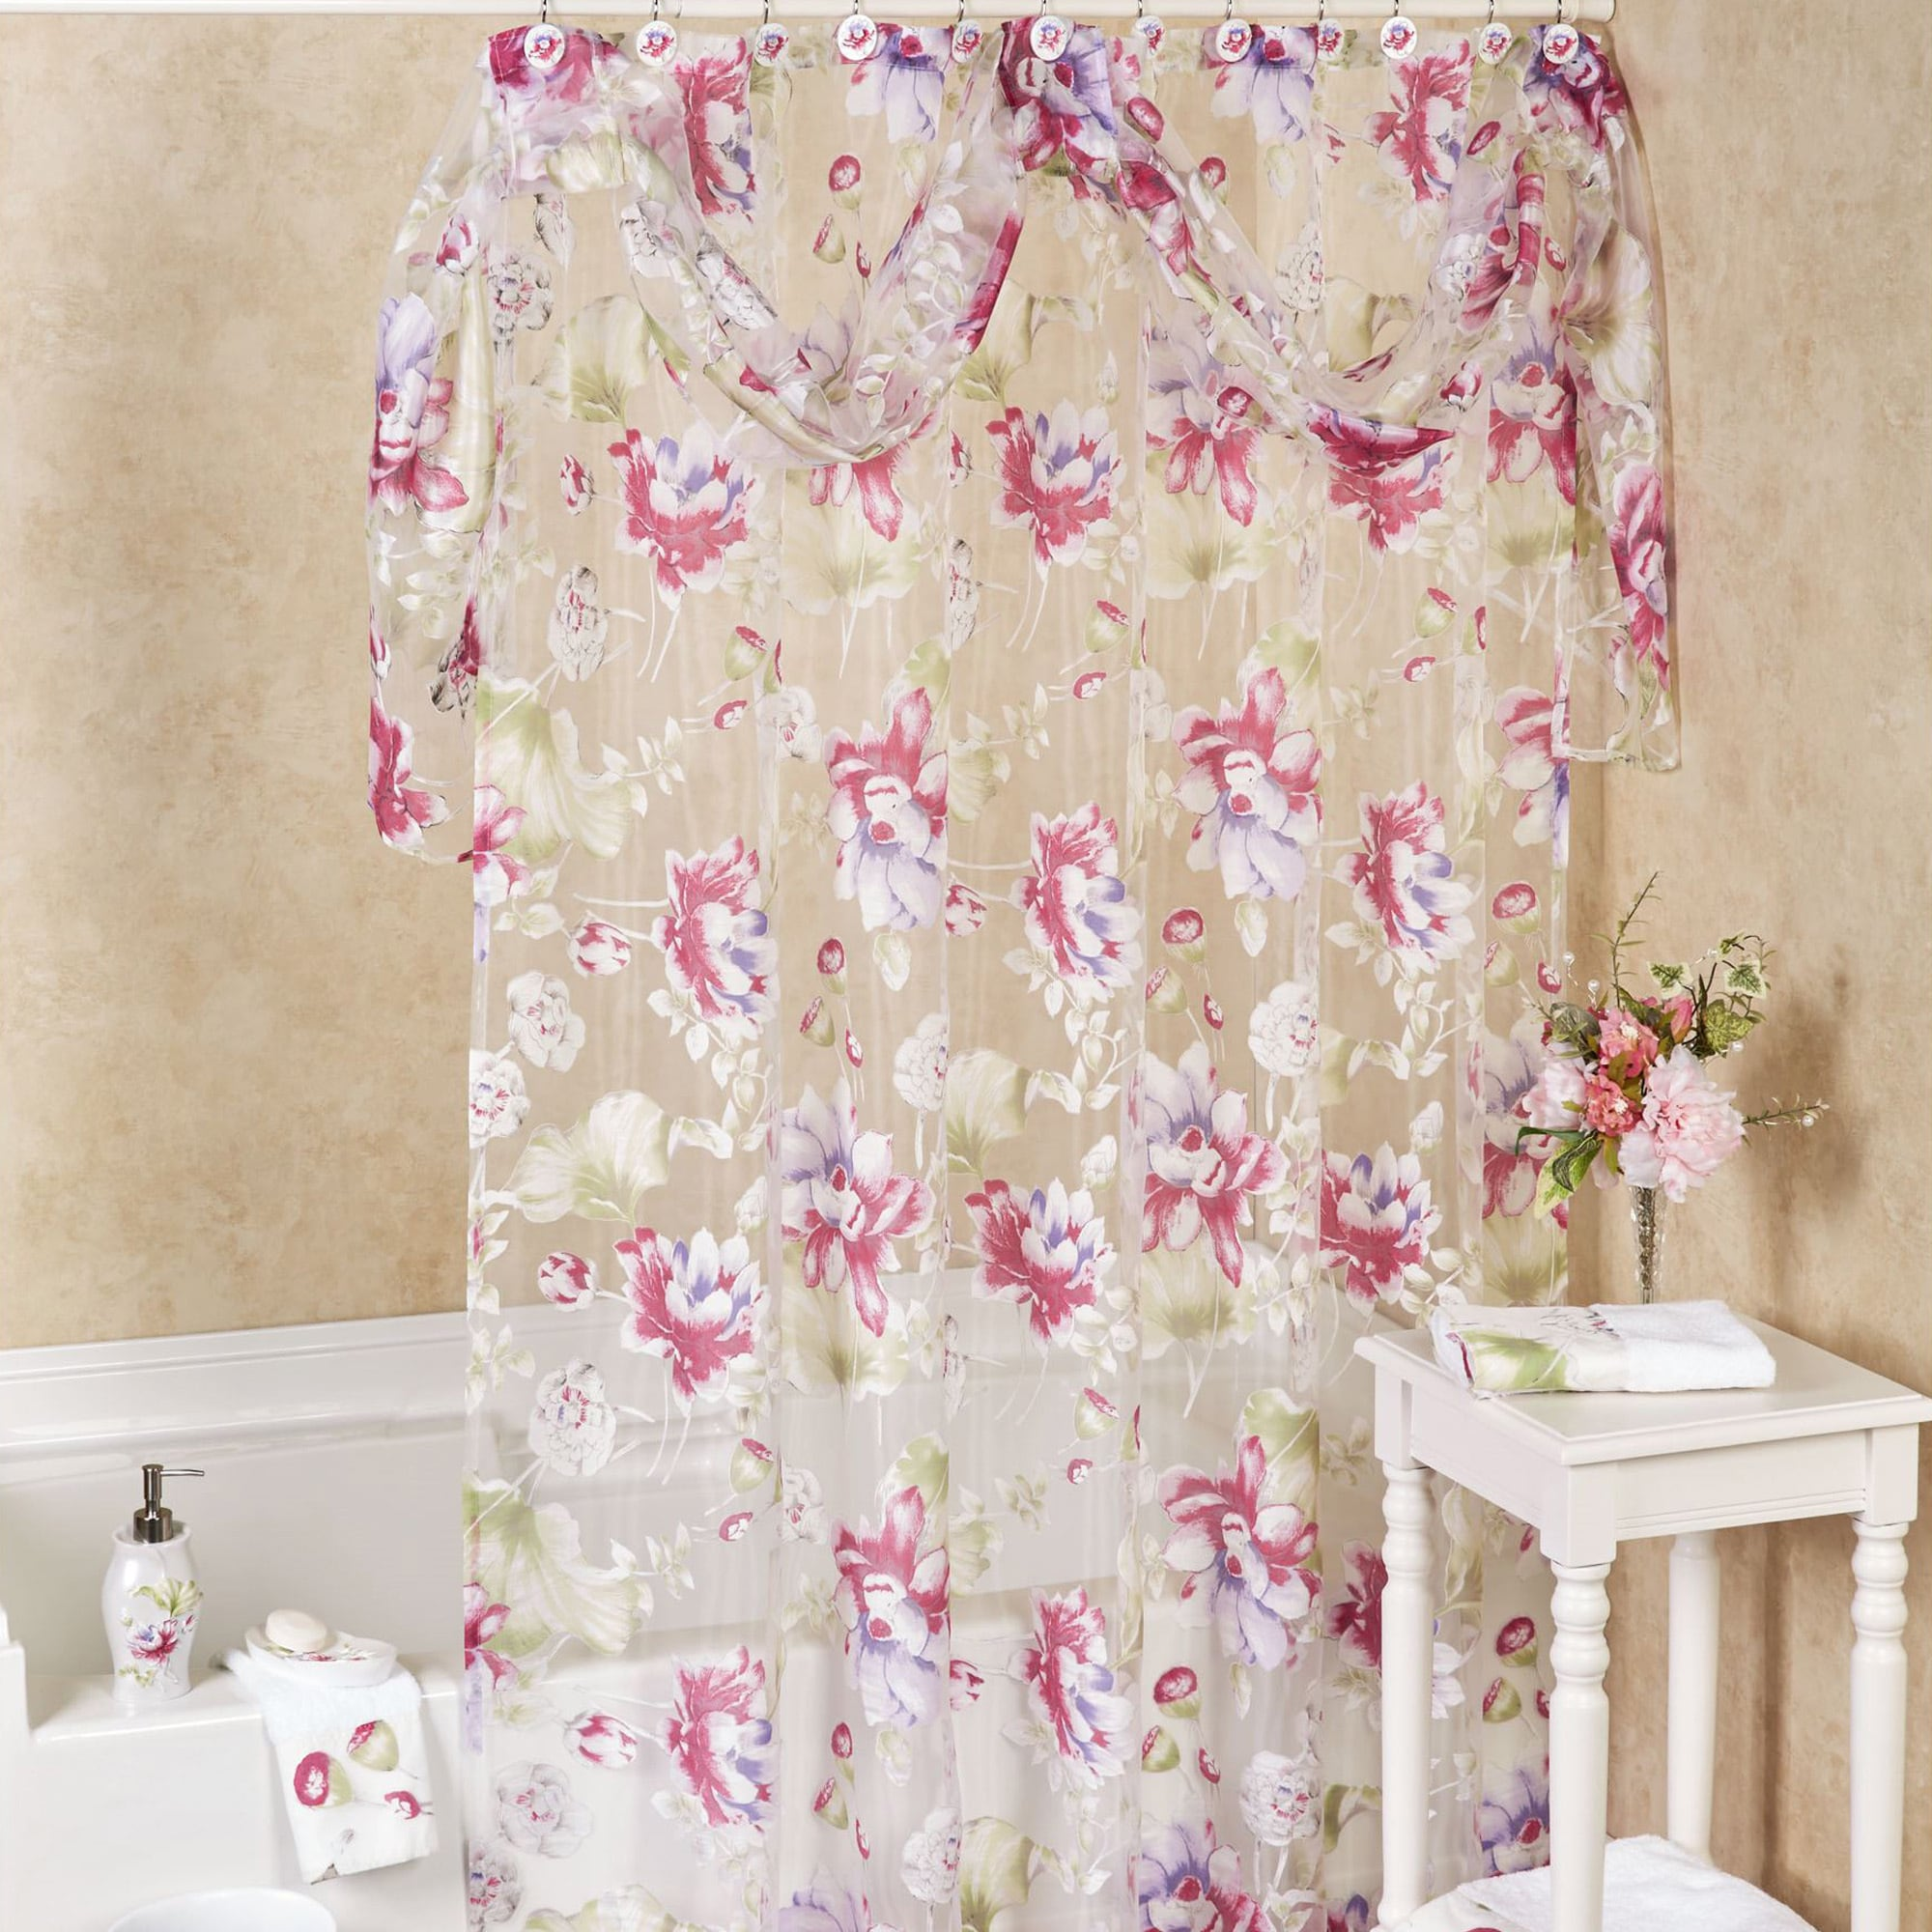 Sheer Floral Shower Curtain With Detachable Scarf Valance and Hooks